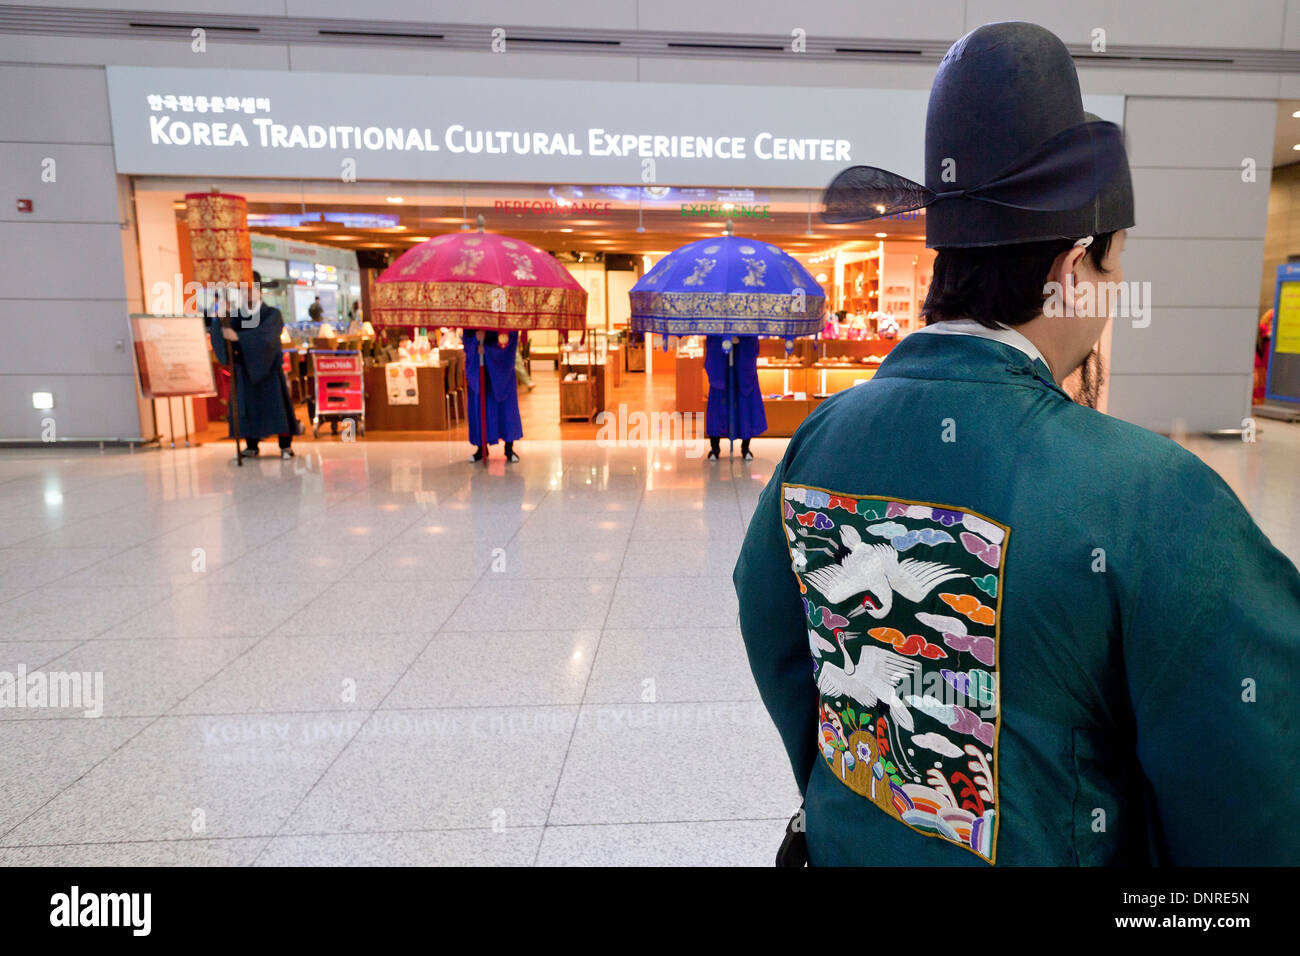 Korea Traditional Cultural Experience Center at Incheon International Airport - South Korea - Stock Image